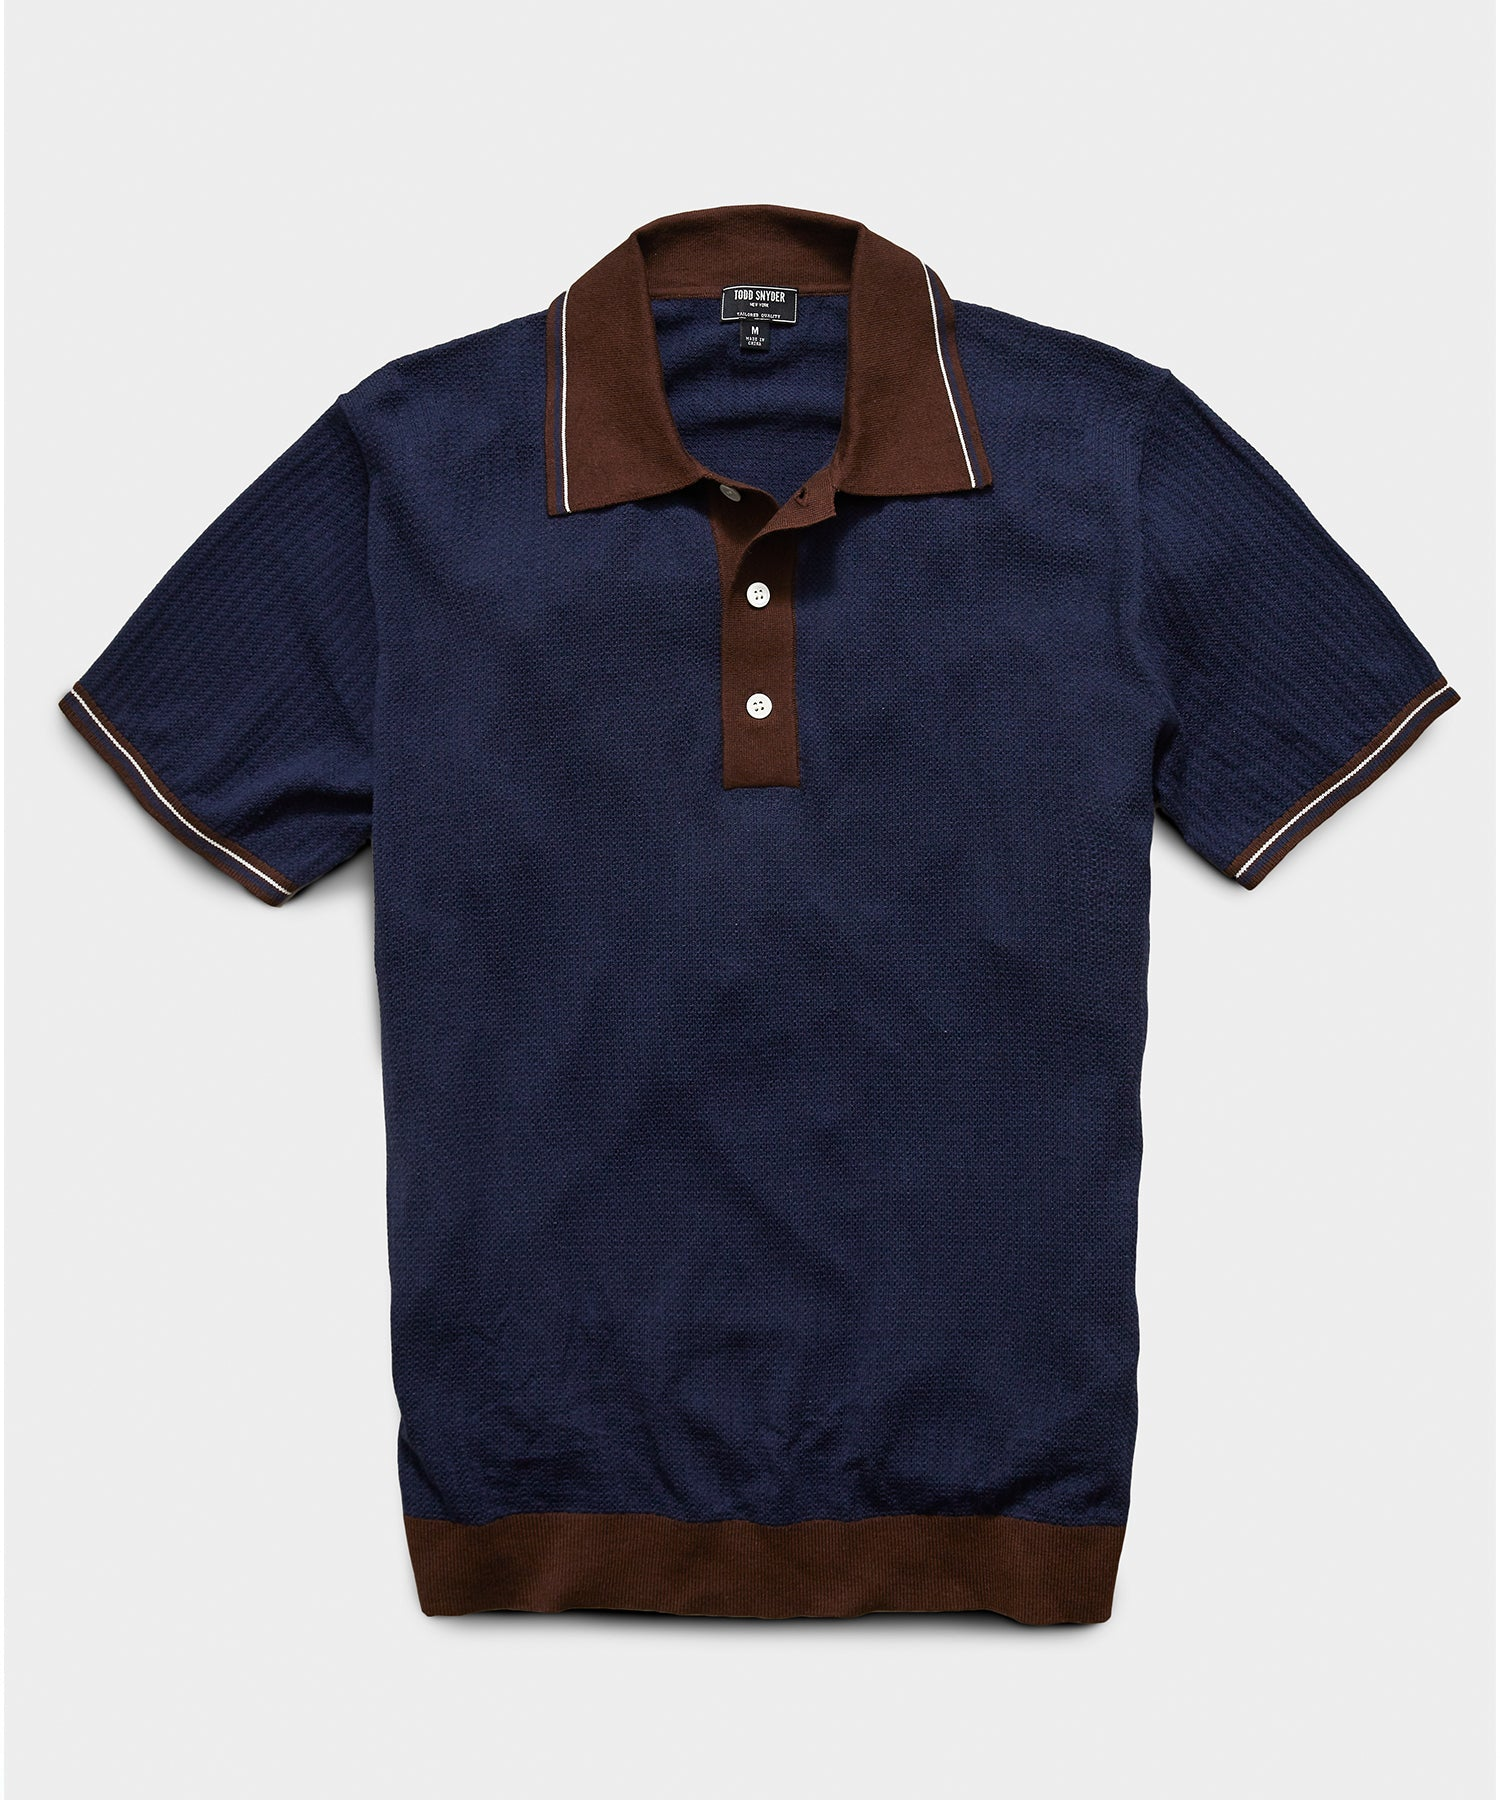 Textured Stitch Tipped Sweater Polo in Navy